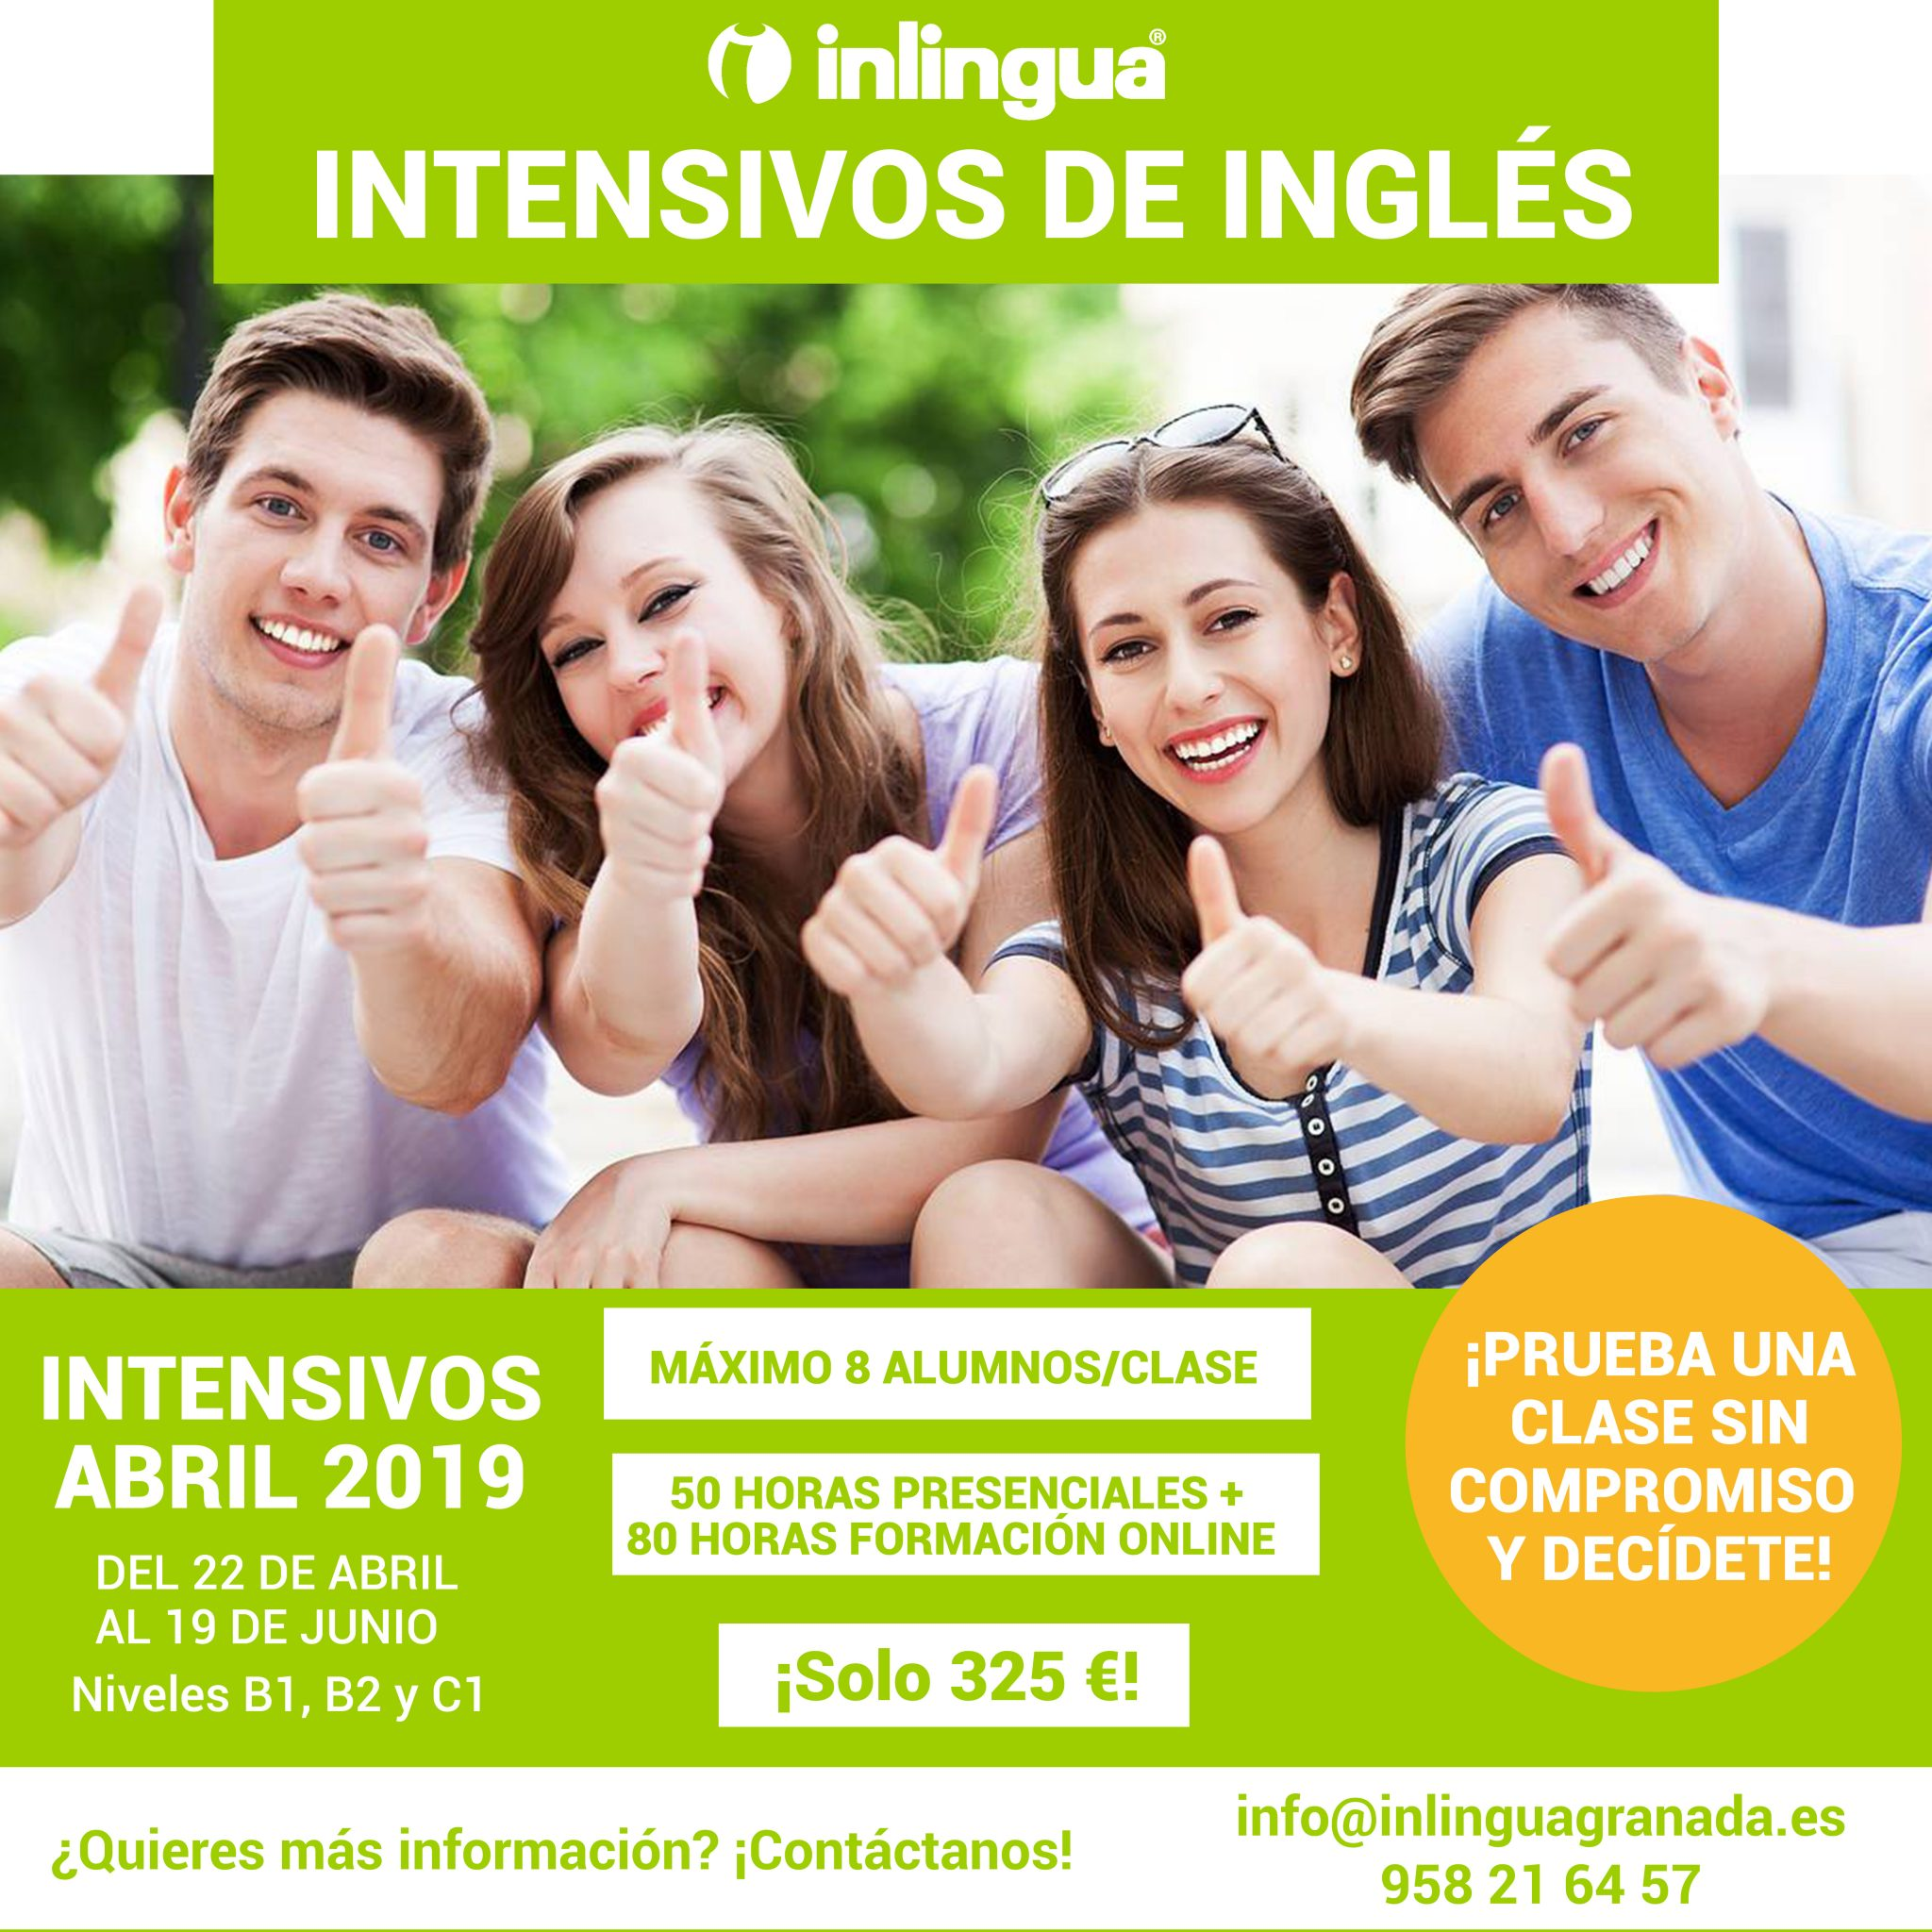 Intensivo de ingles en Granada Abril mayo junio